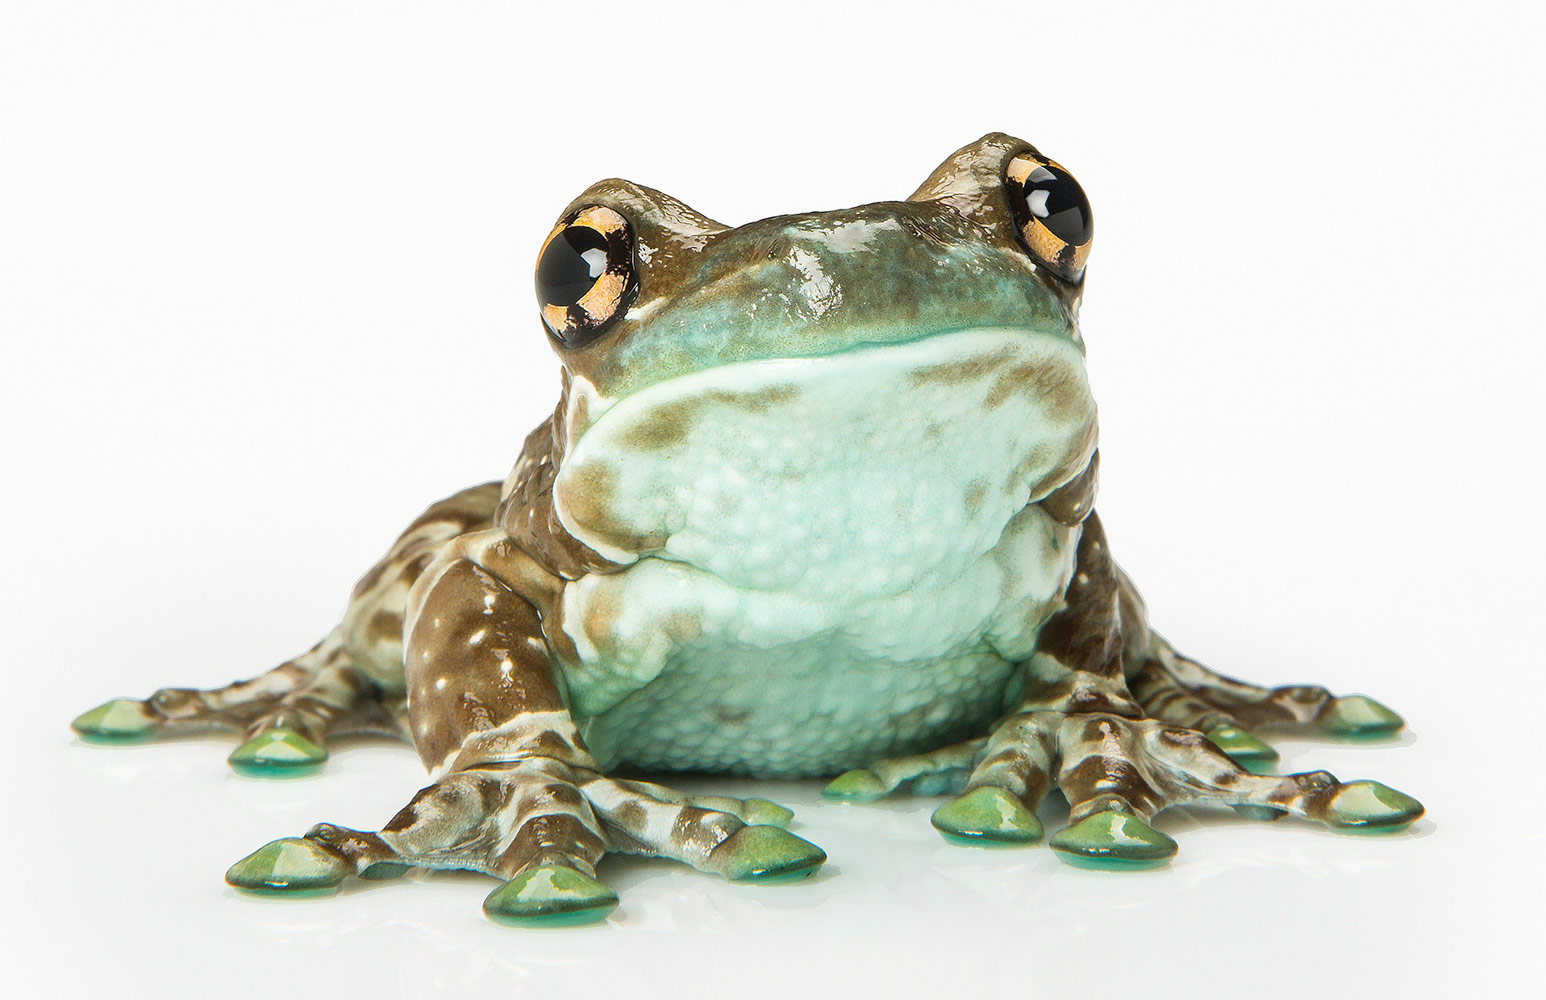 Amphibians - A Close Encounter, © George Kamper, Wilton Manors, United States, First Place Commissioned Work, Best Friends — Animal Photography Contest